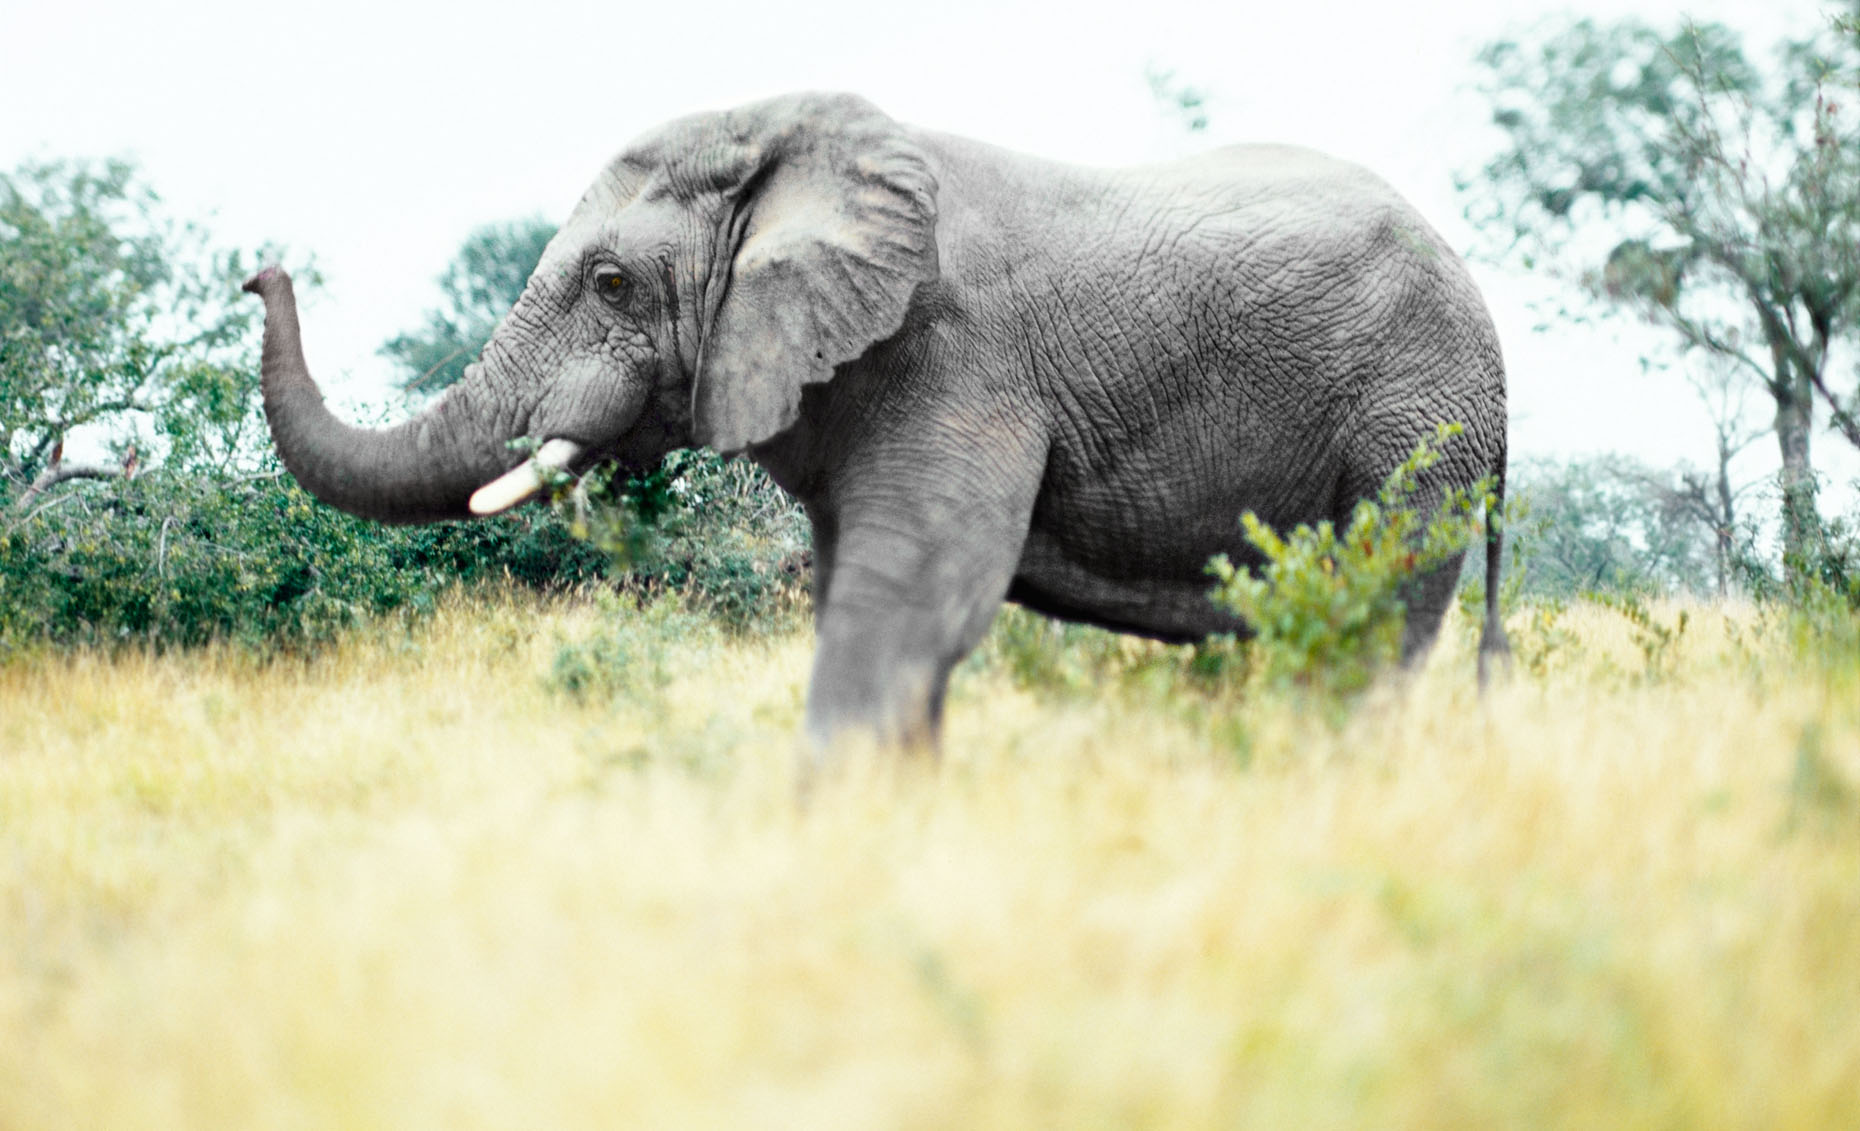 Mature elephant in Londolozi Game Reserve, South Africa